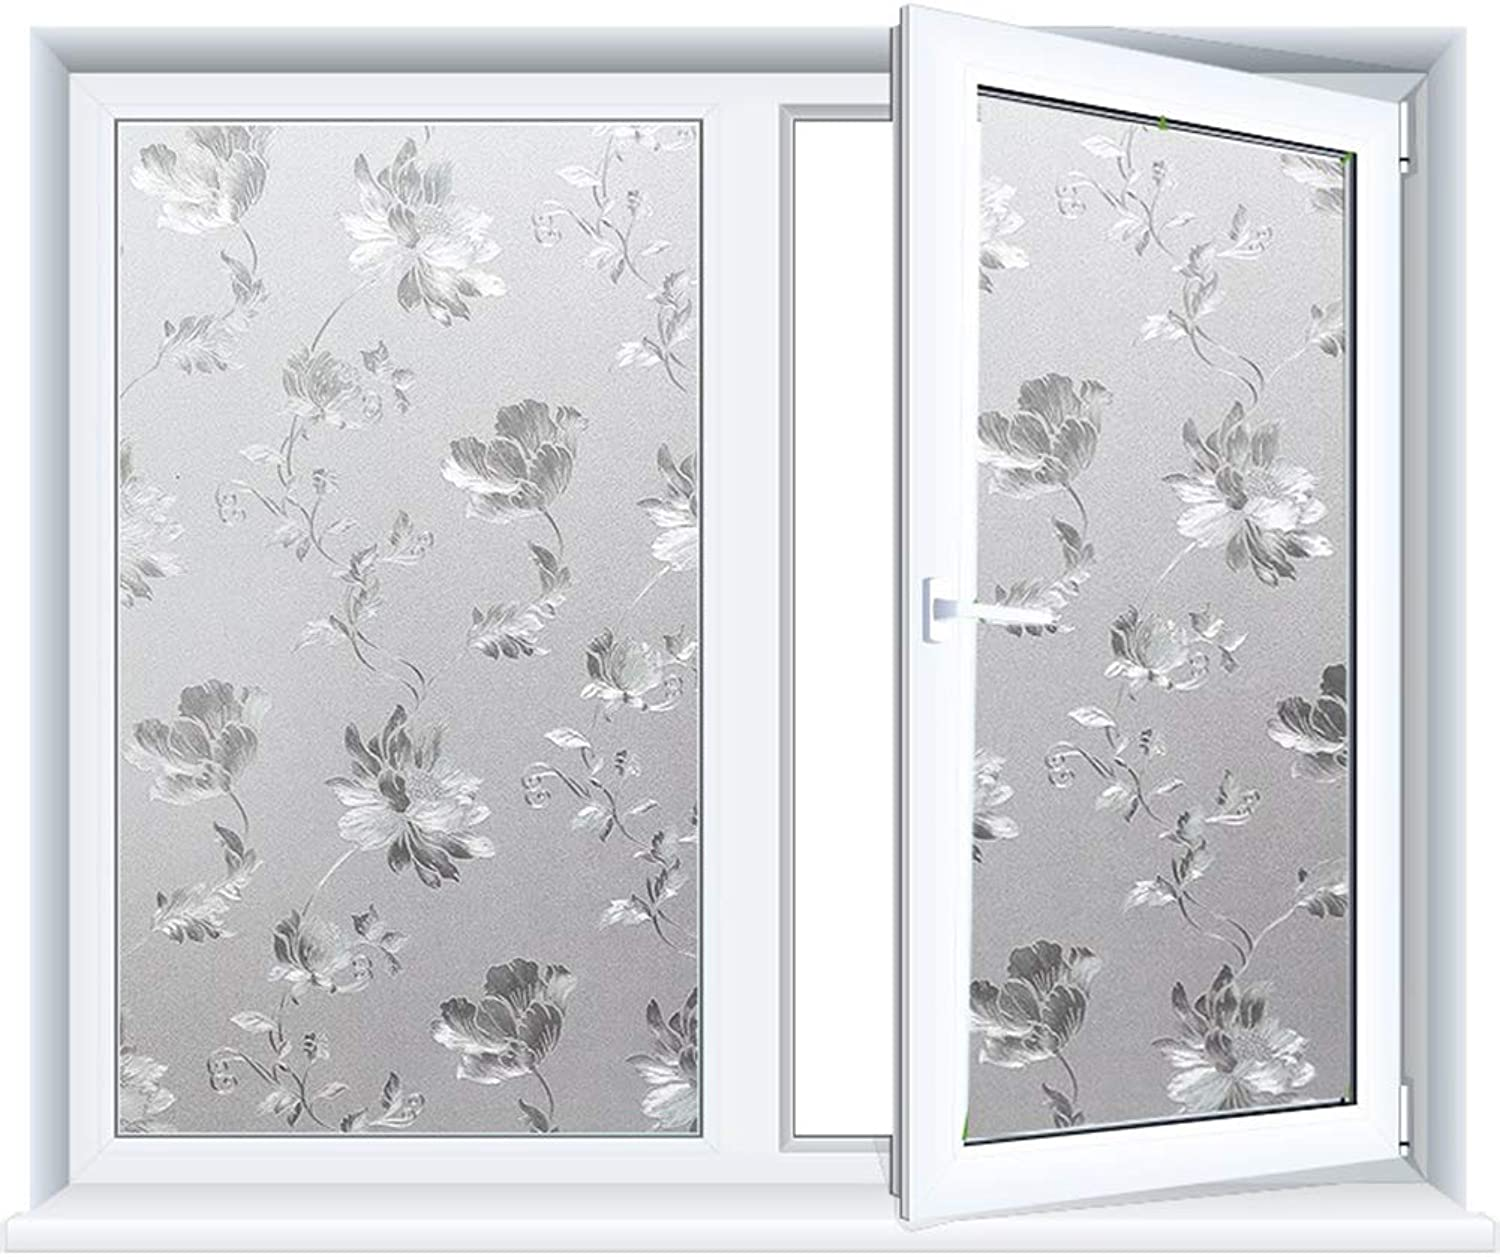 Frosted Window Film Privacy Window Stickers, Glass Film Decorative Window Anti-UV Films Self-Adhesive Vinyl Window Clings for Home Bathroom Office,45x200cm(17x78in)